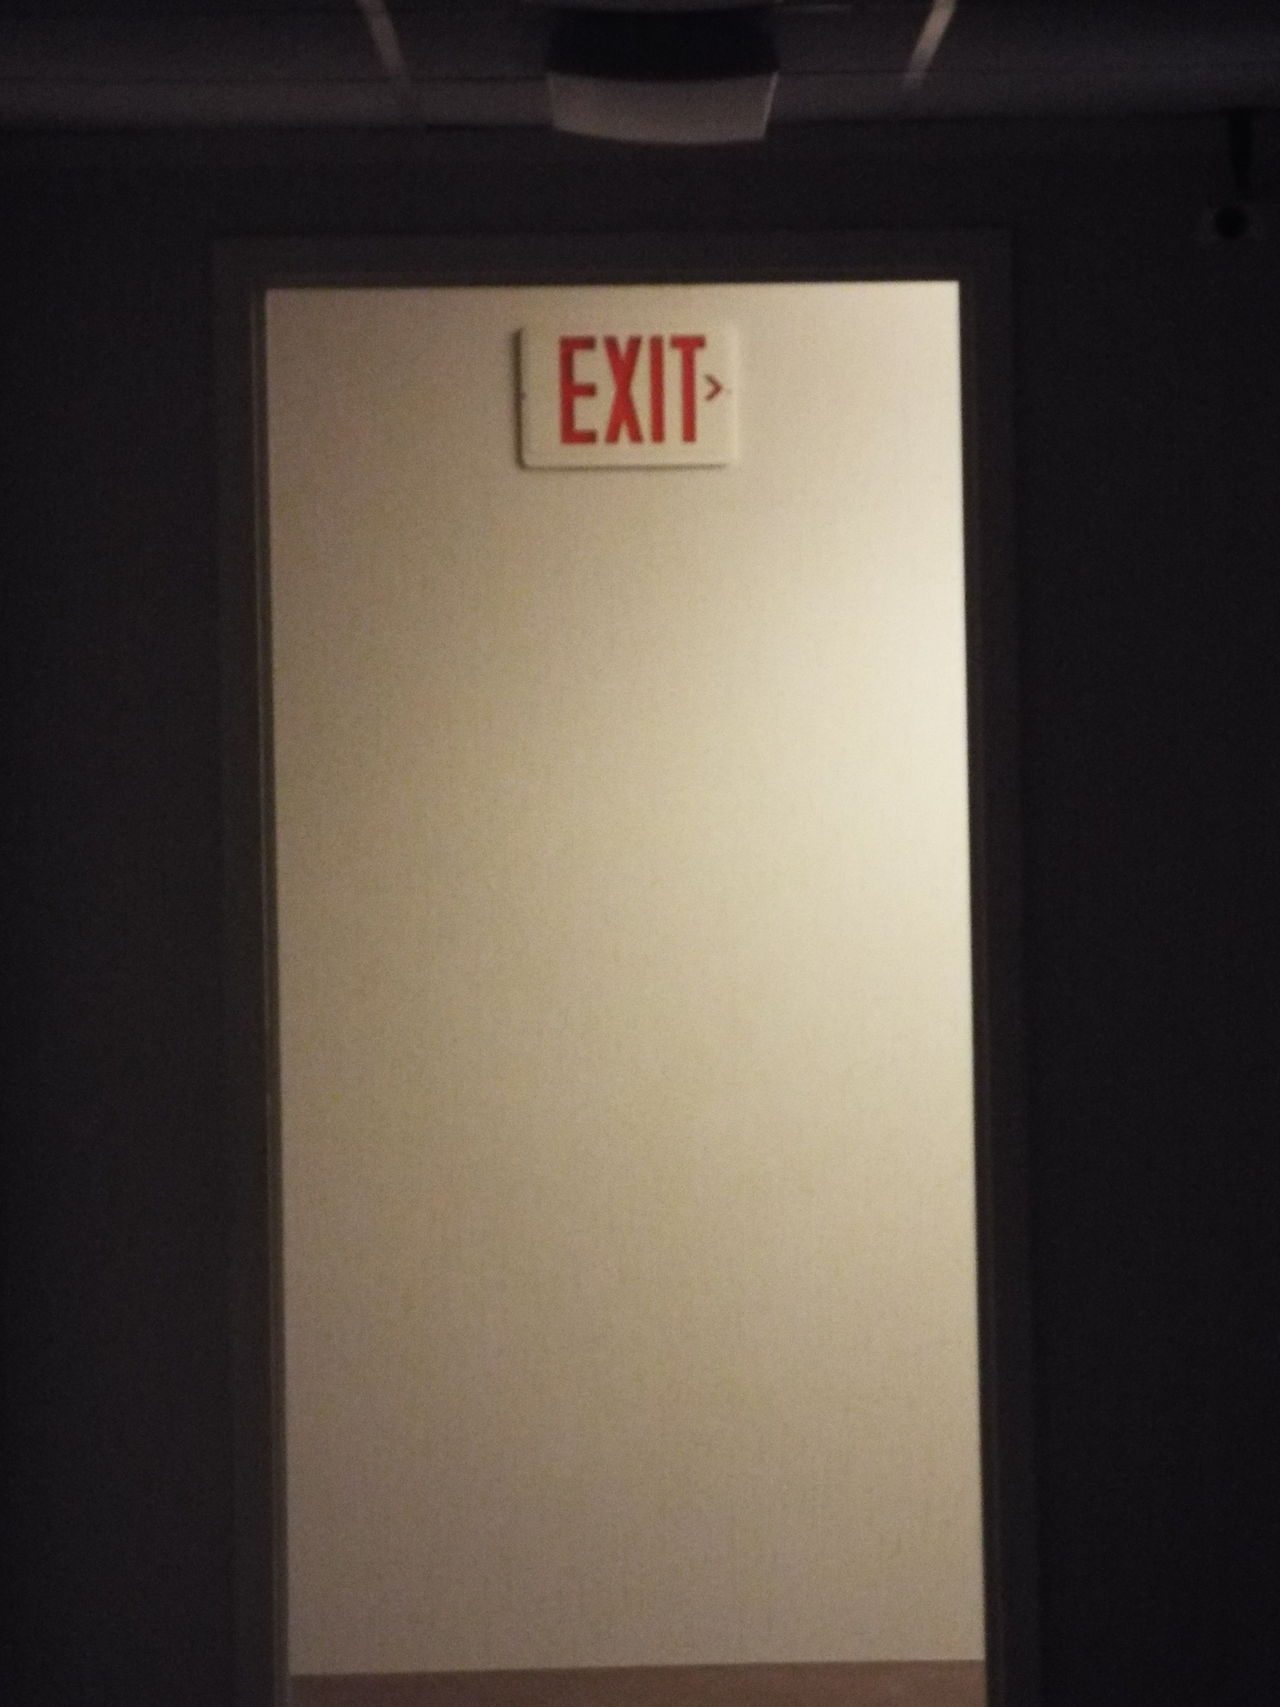 Dark Dark Hall Dark Hallway Doorway Doorways Emergency Exit Emergency Exit Door Exit Exit Sign Get Out Hall Hallway Hallway Lights Hallway Photo Hallway Pics Hallway Pictures ❤ Hallways Illuminated Information Information Sign Interior Photography Low Light No People Which Way To Go?